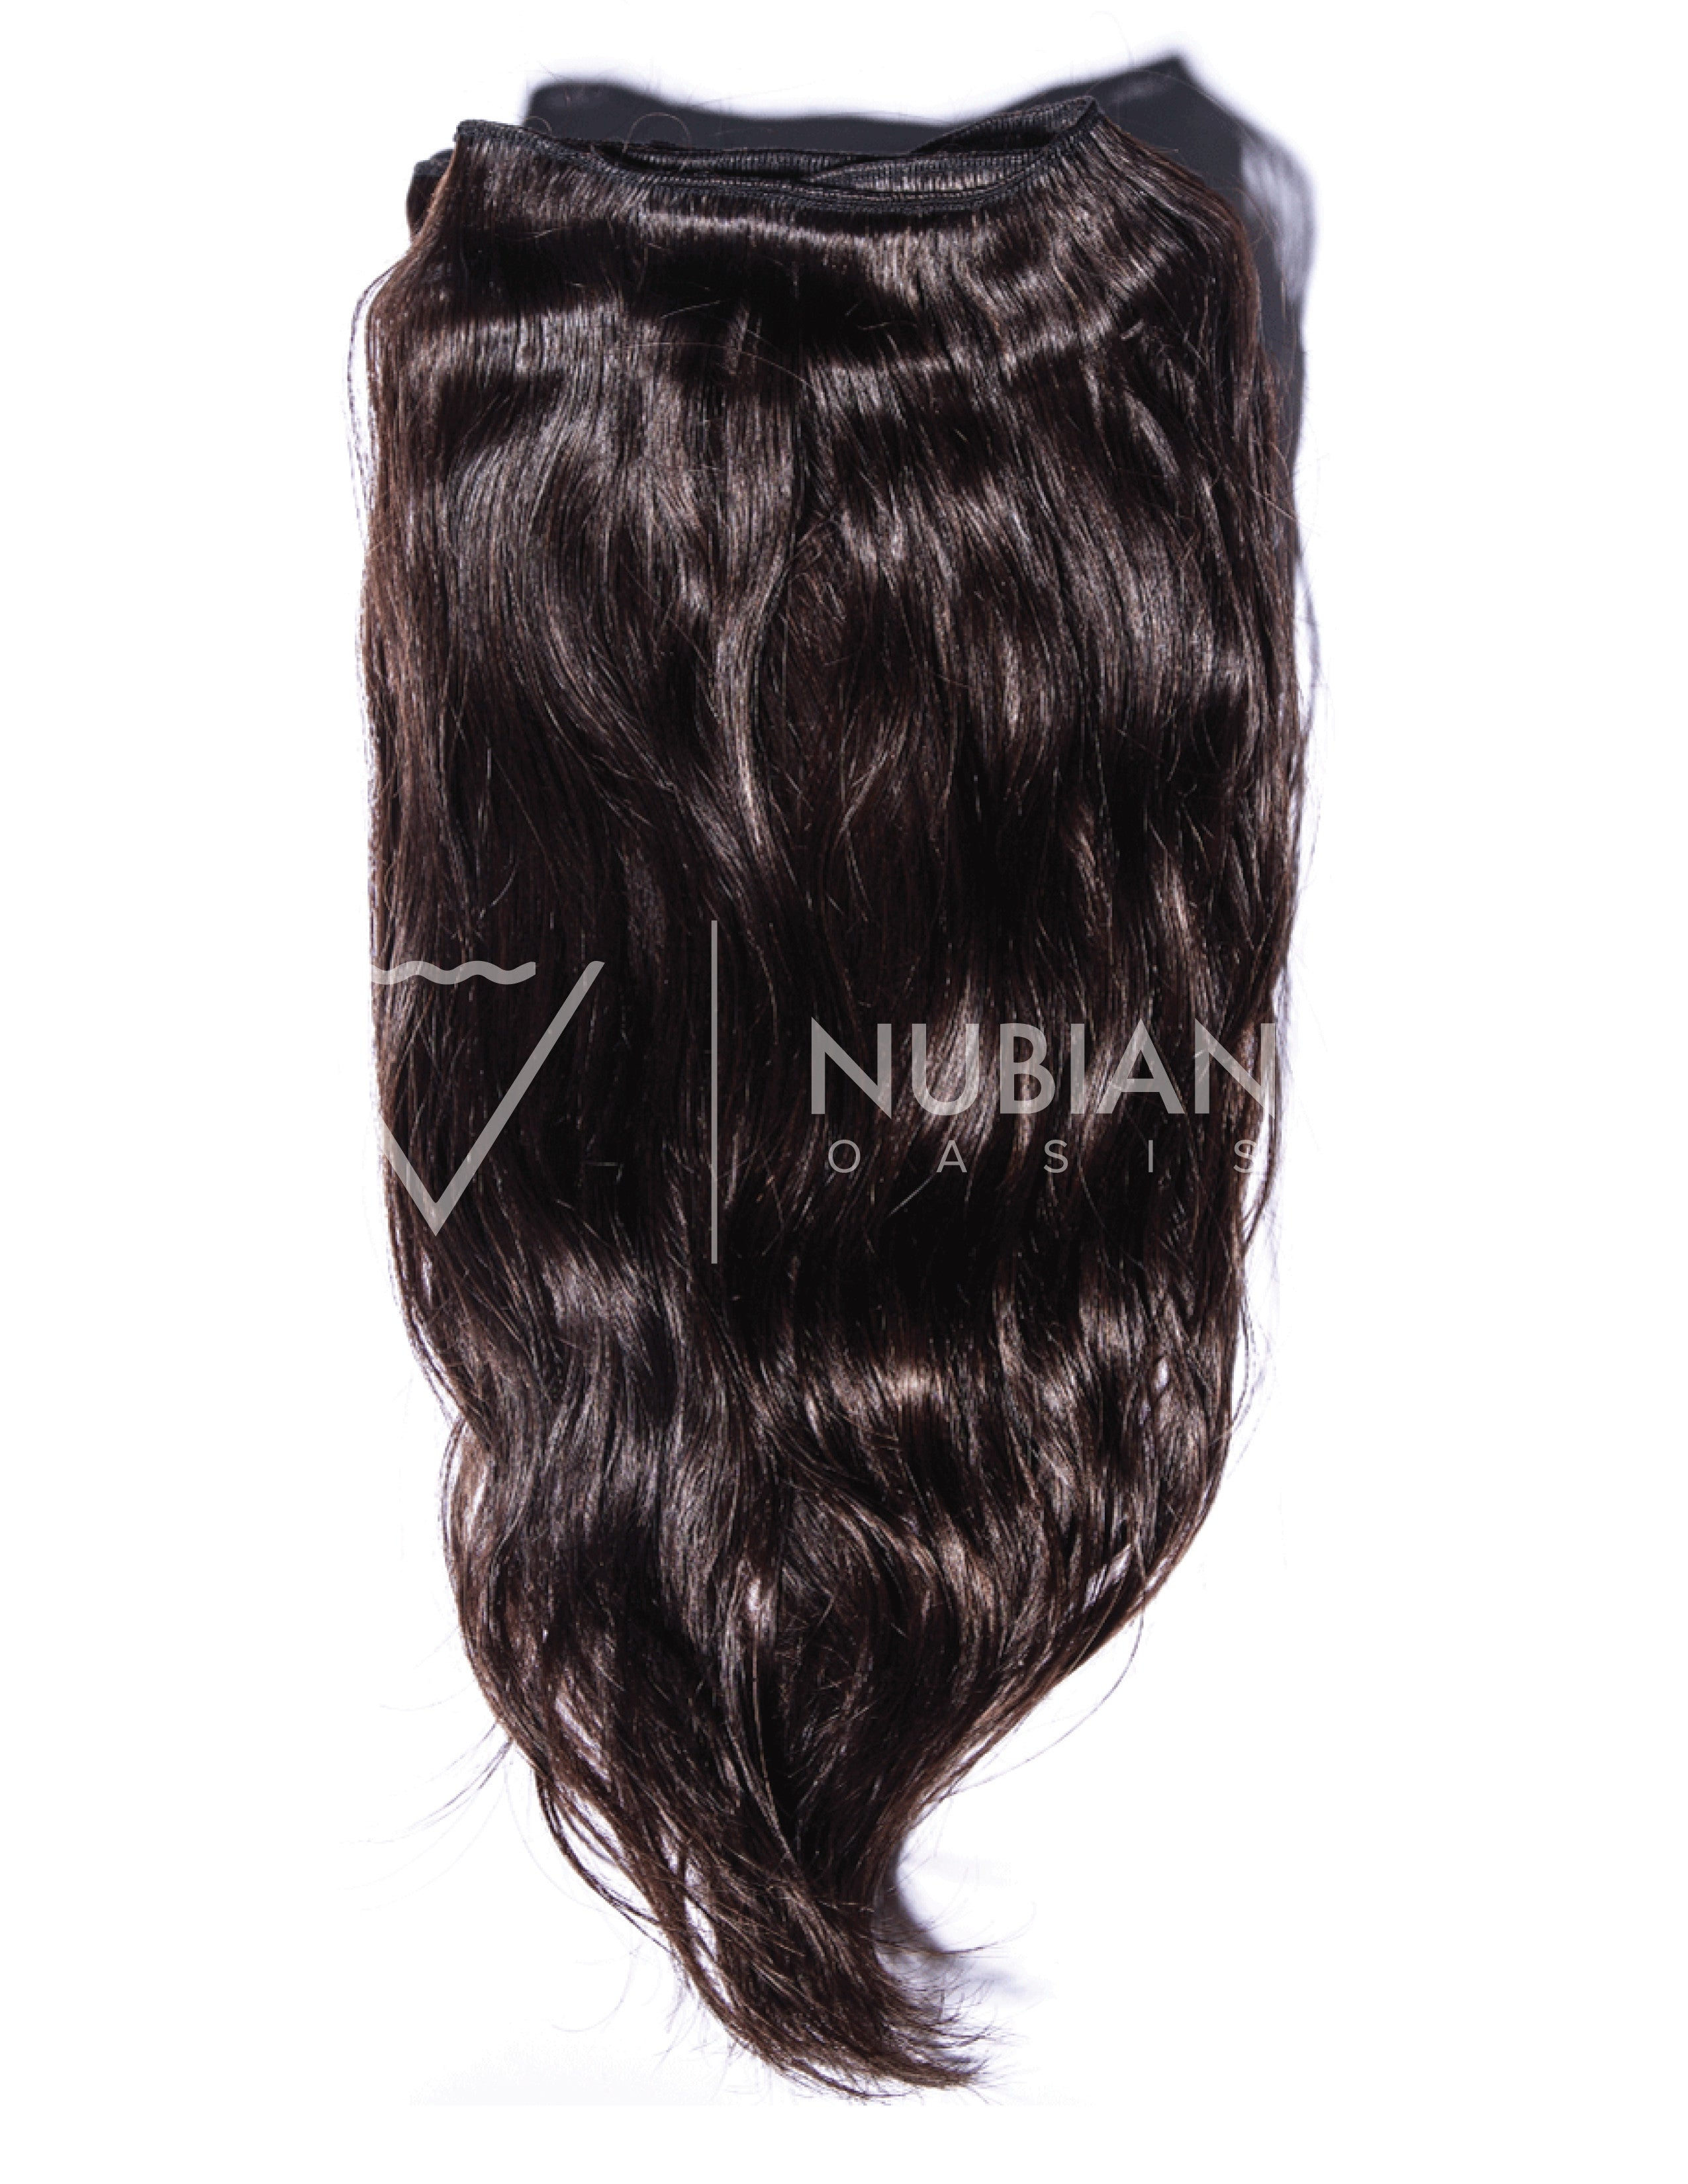 Natural Wave Wavy Hair Extensions Miami Nubian Hair Oasis